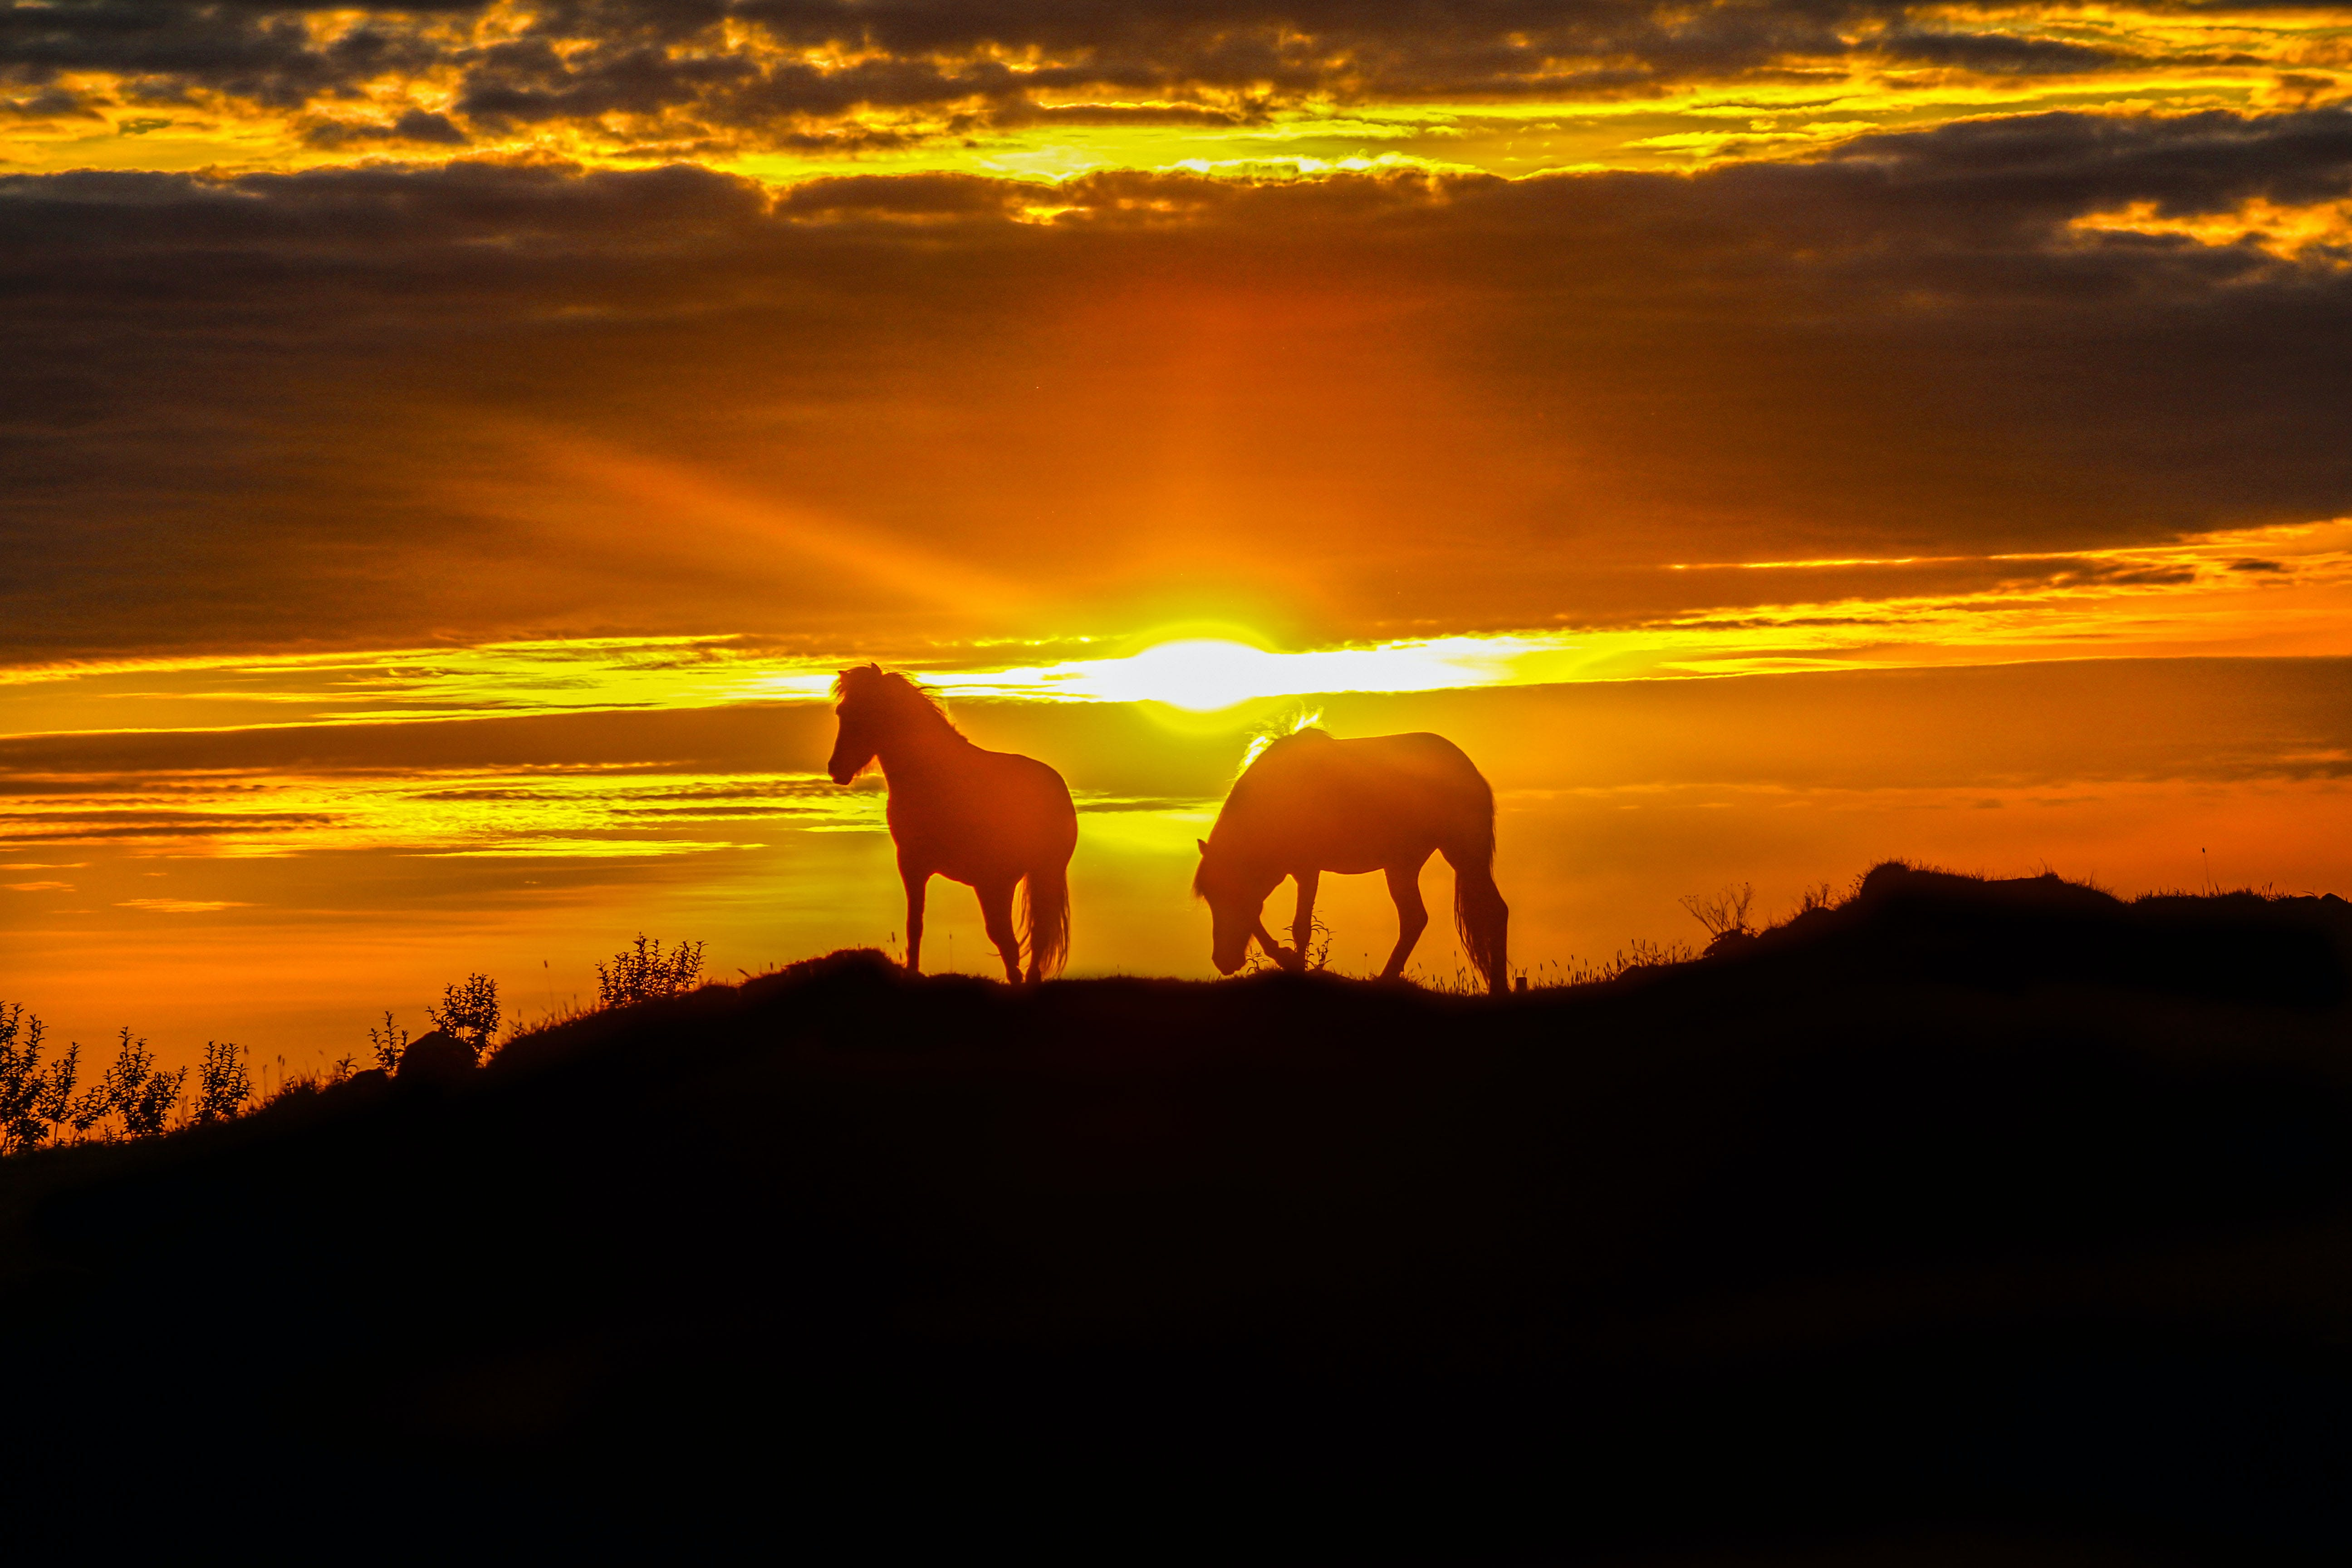 Horses in the sunset, Westfjords, Iceland